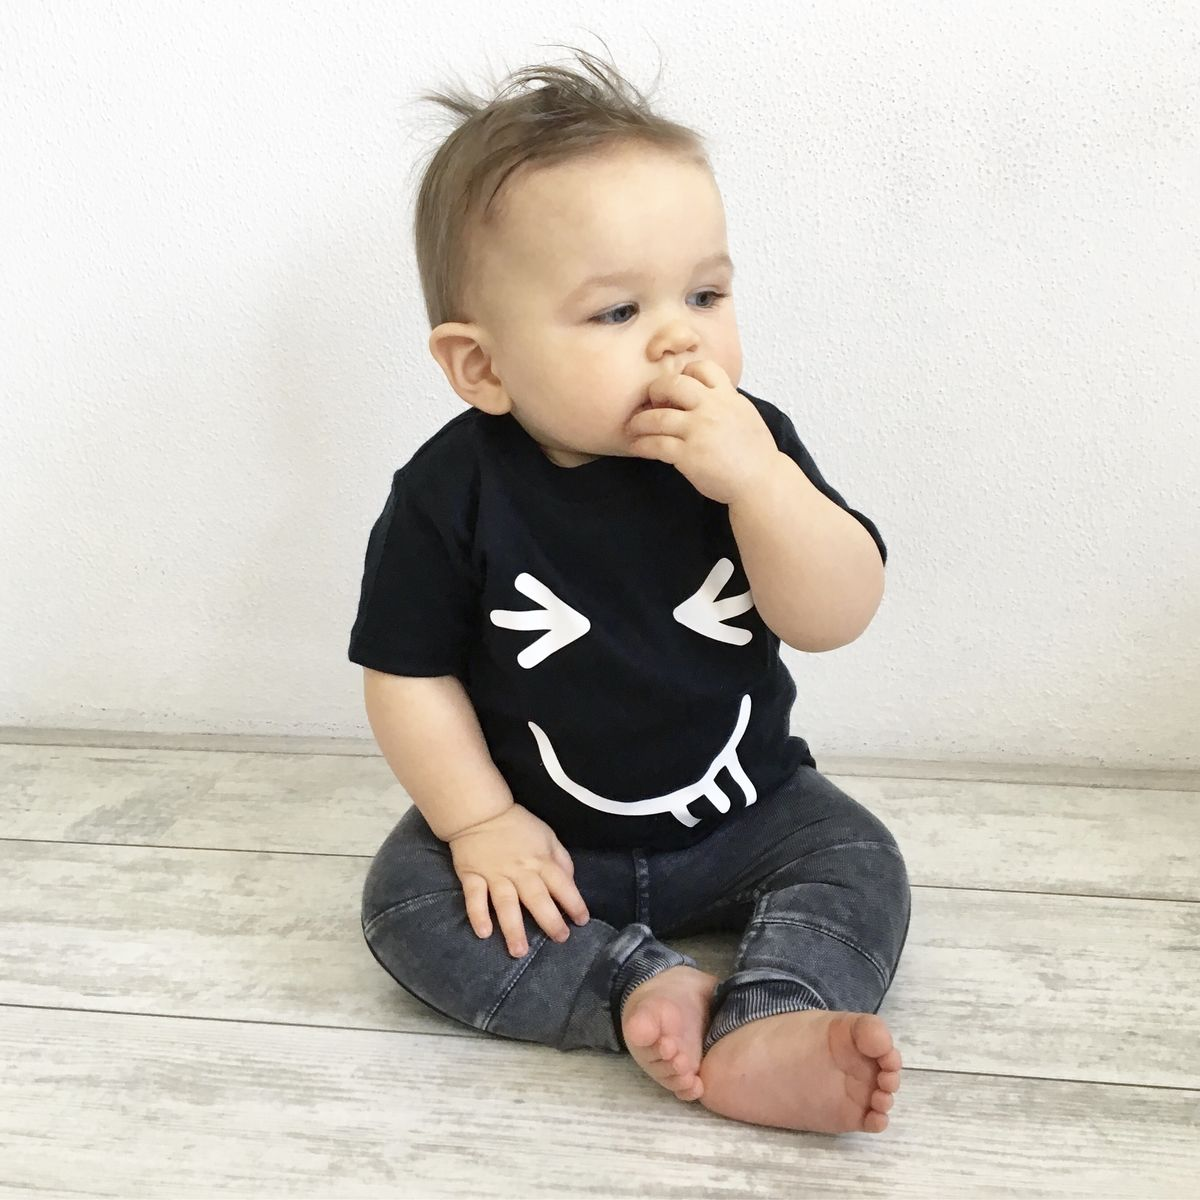 Cheeky Face Black & White Kids T-Shirt (various sizes) - product images  of